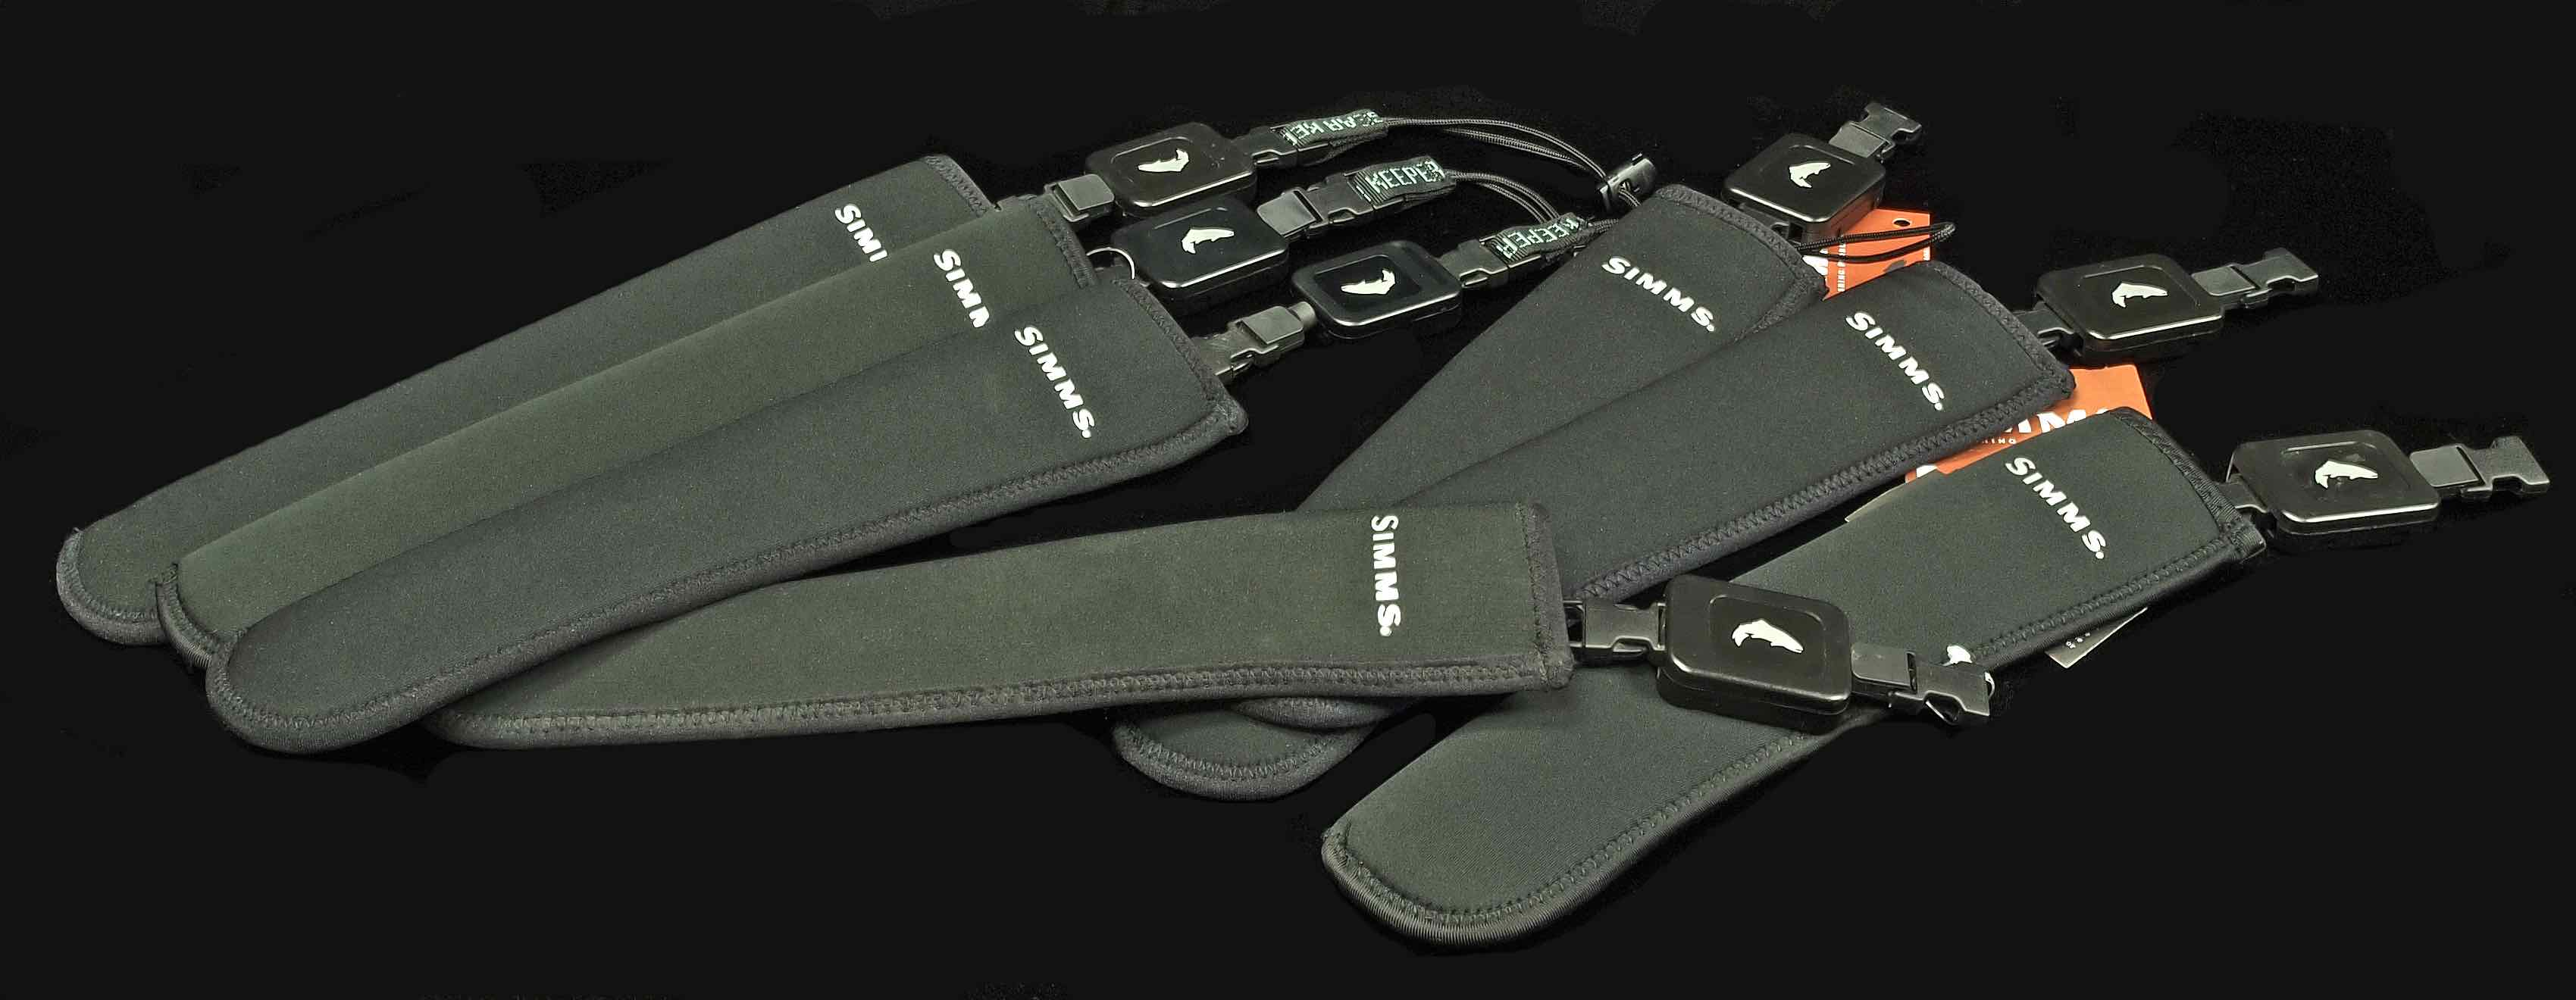 Simms Replacement Neoprene Wading Staff Pouch and Retractor